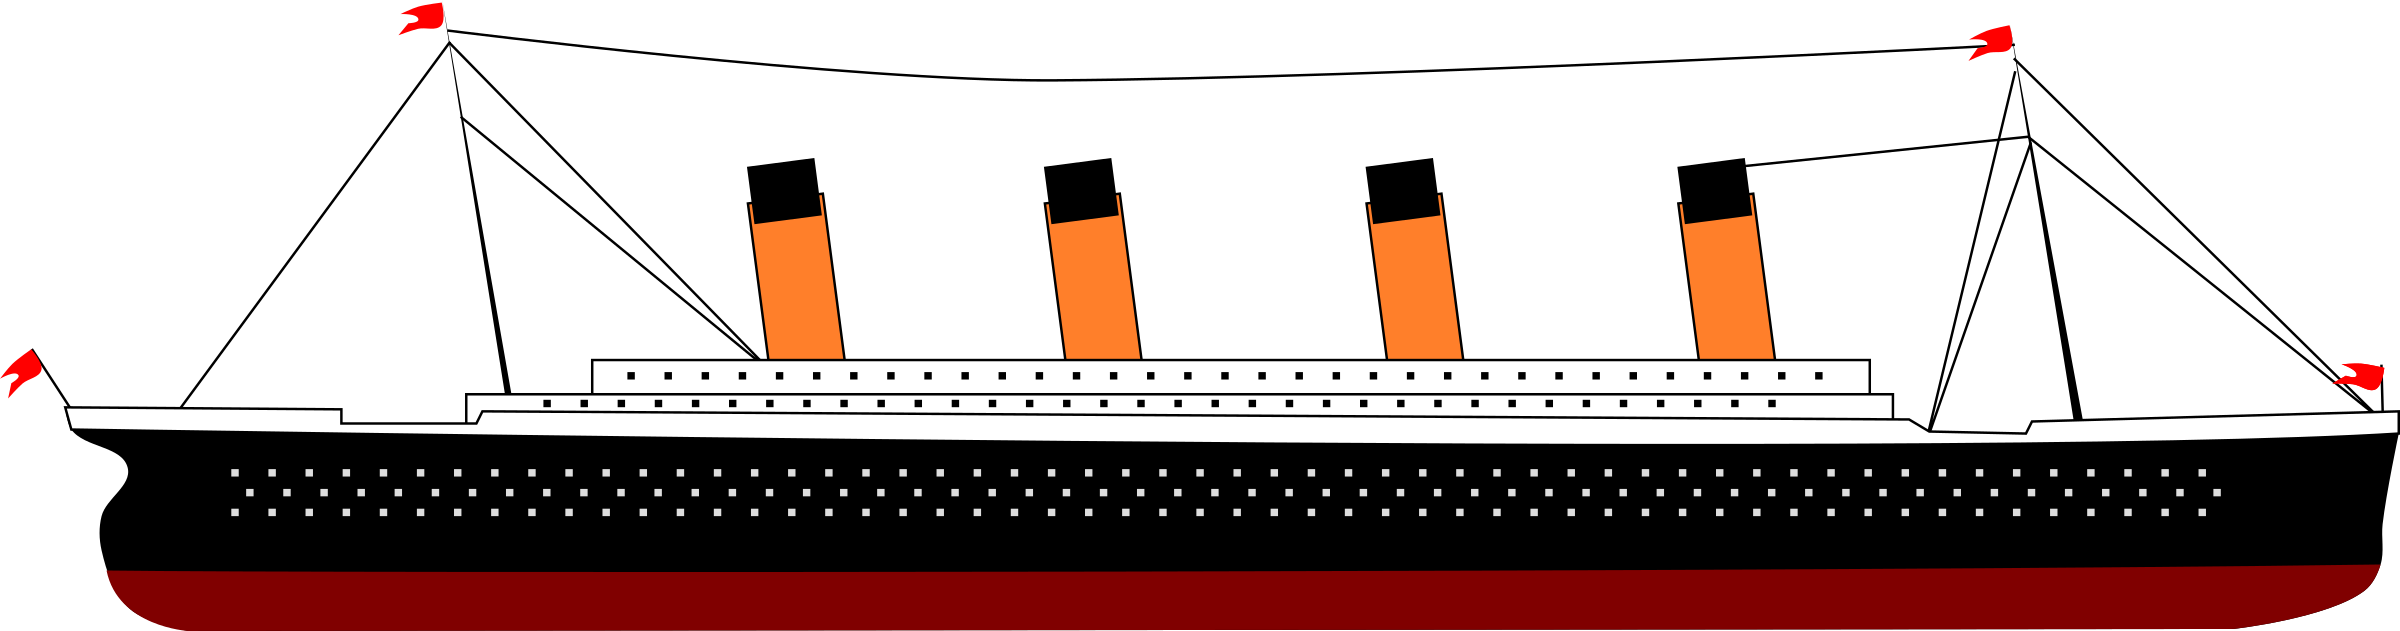 Free cliparts download clip. Titanic clipart image freeuse